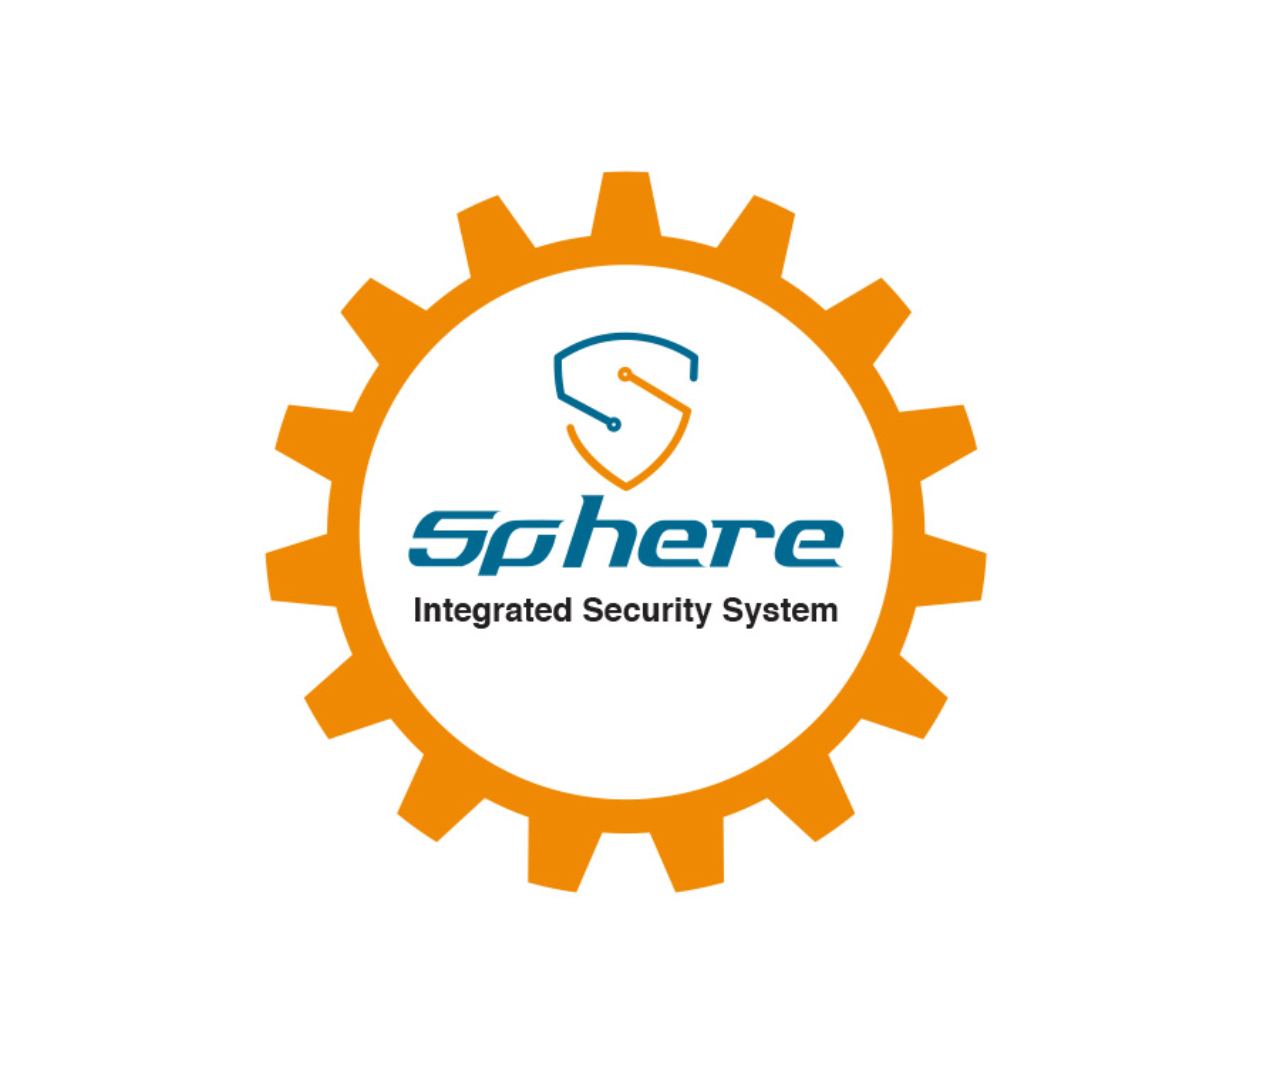 4 Features of Sphere: An Integrated Security System